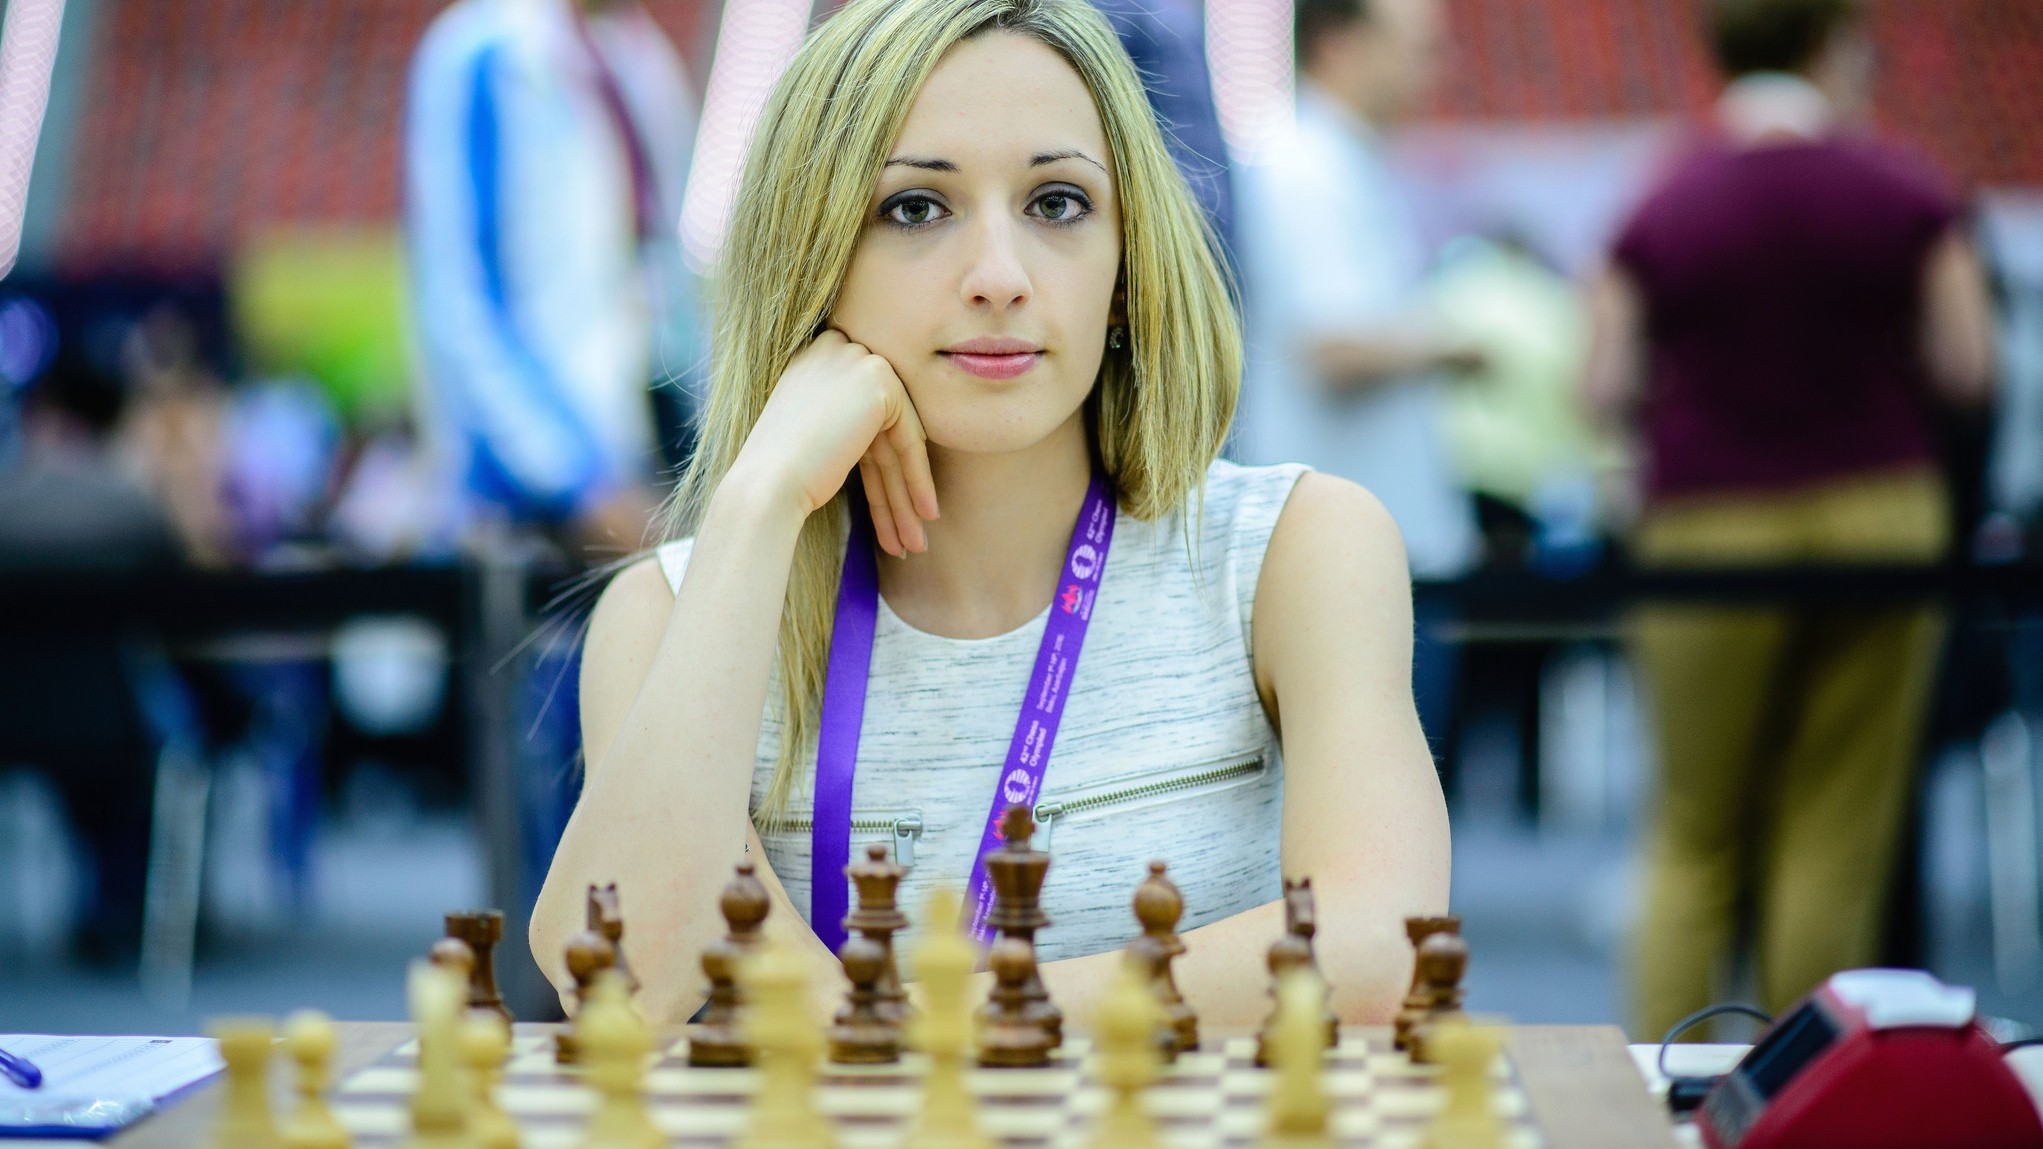 Why the U.S. Women's Chess Champion Refuses to Play in Iran